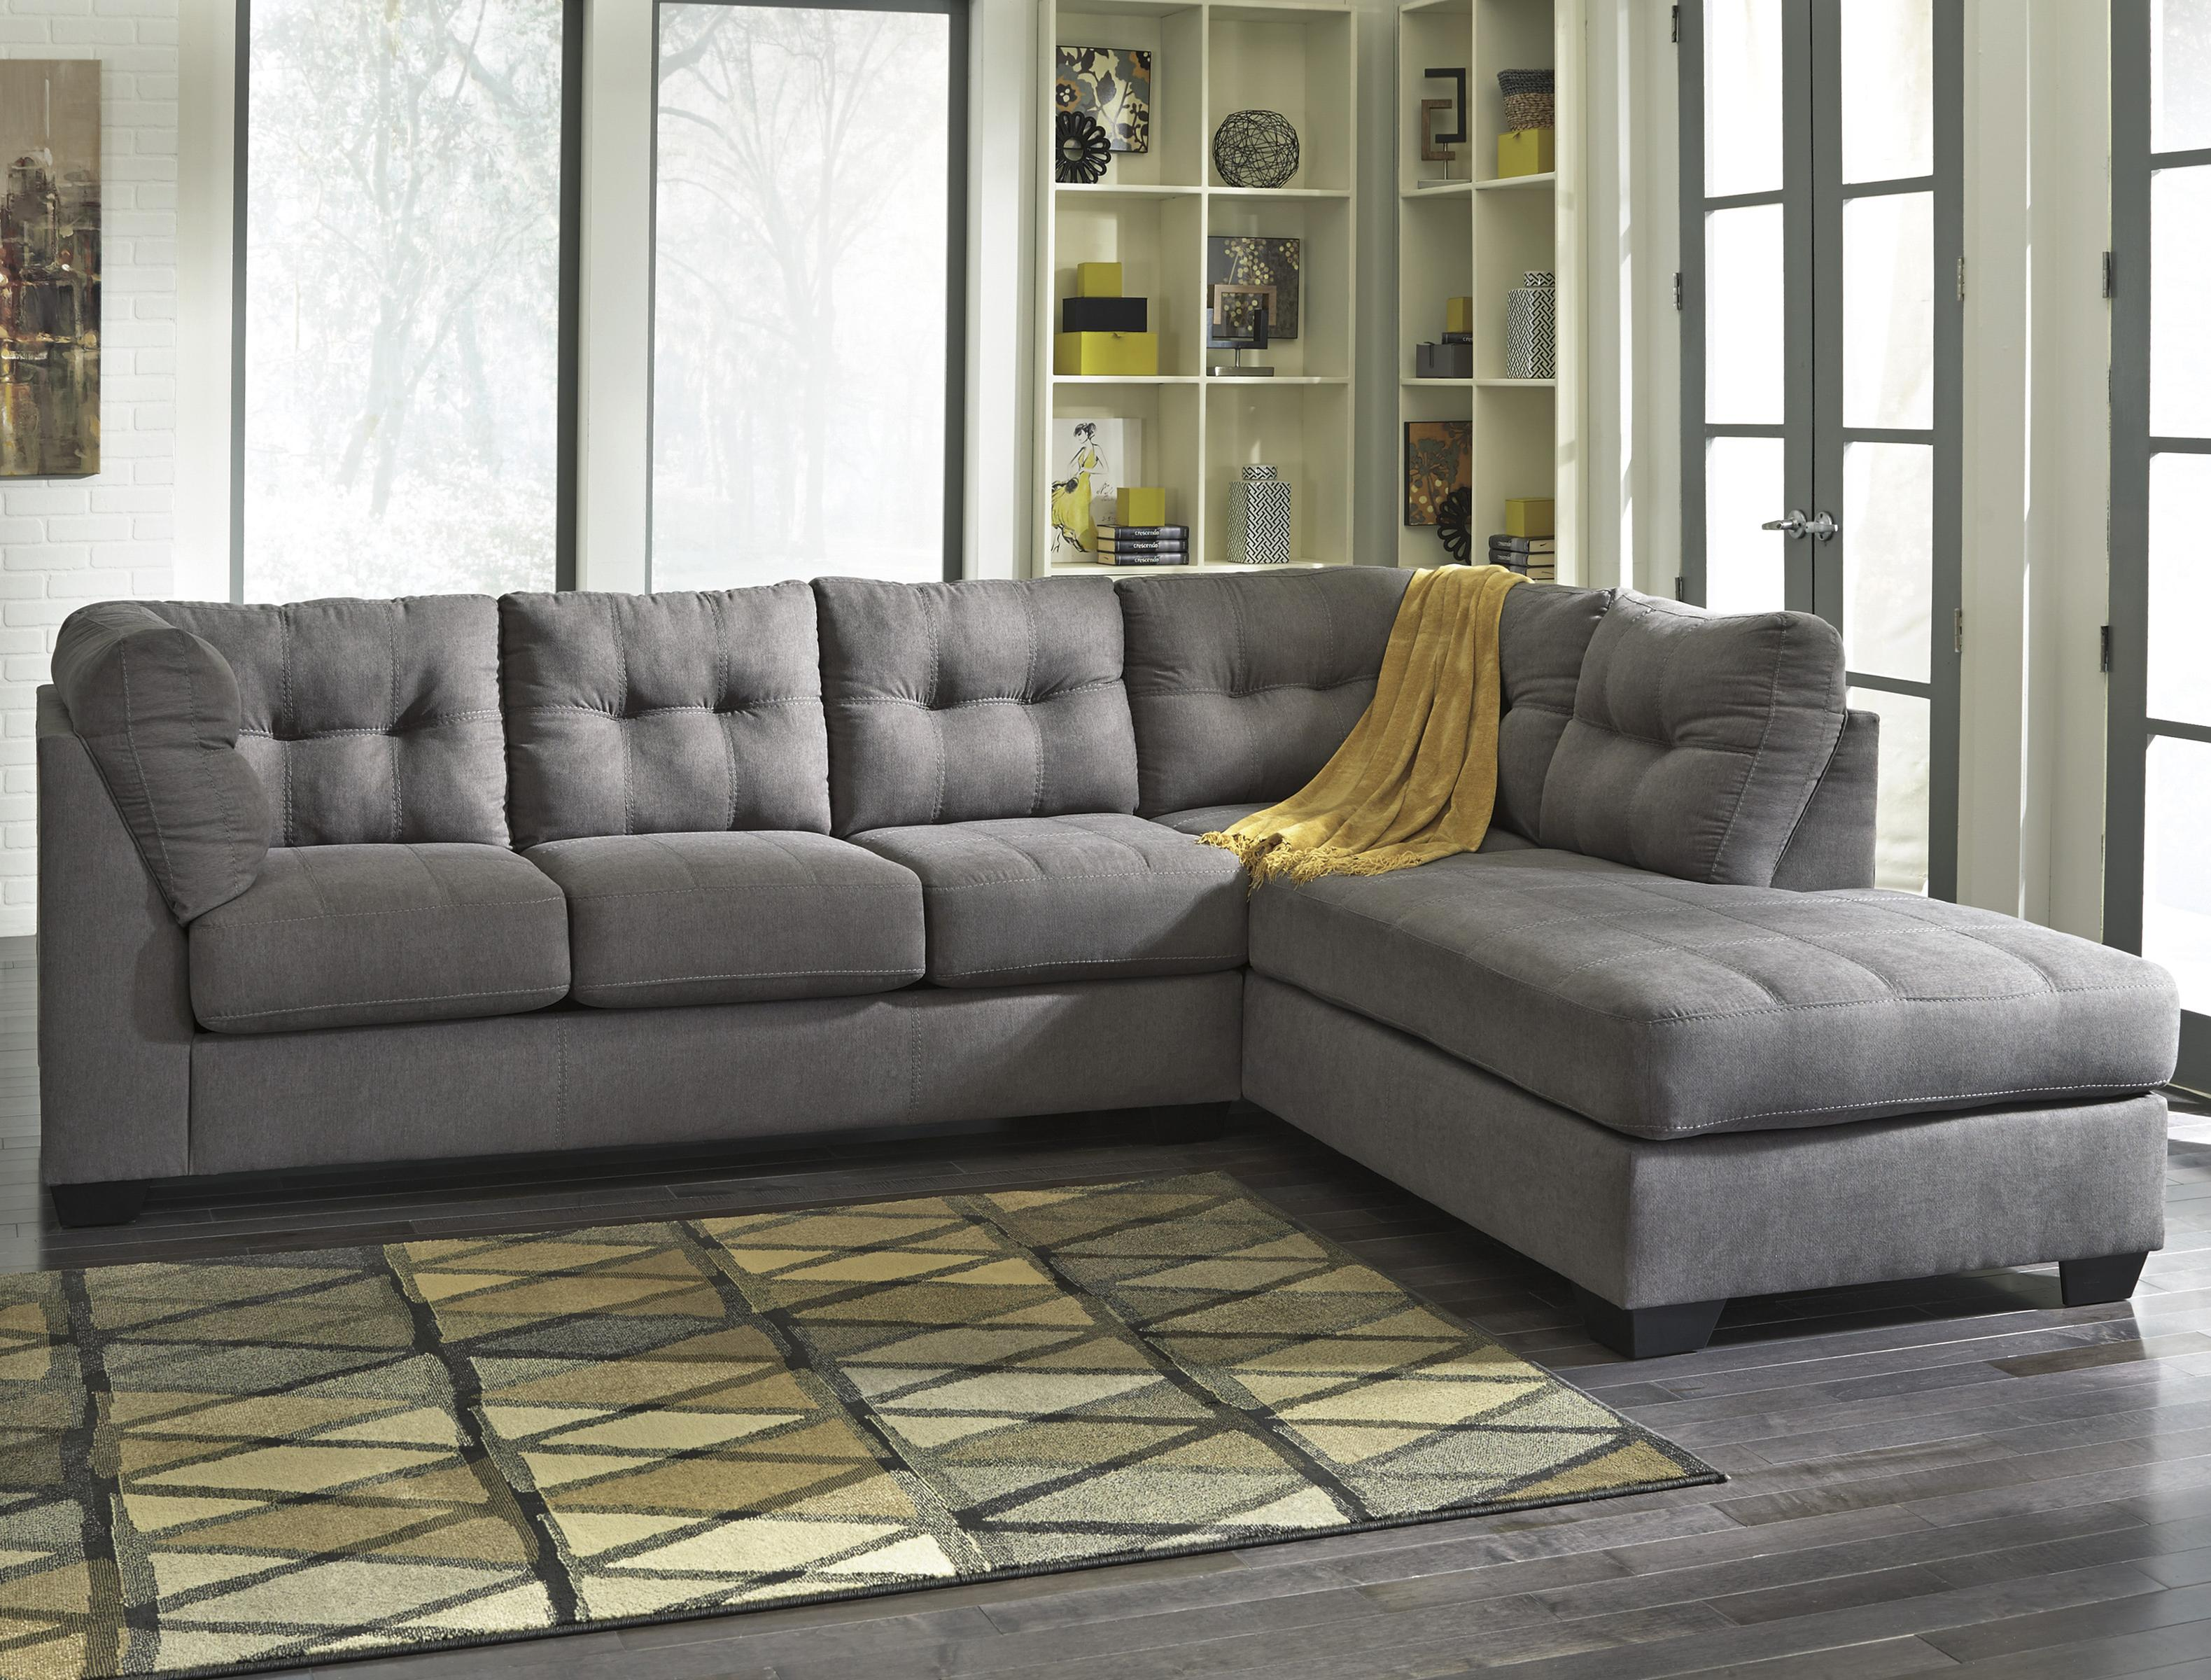 sofas sleeper and living sectionals styles to sofa furniture popular regard splendid with ikea room modern sectional couches